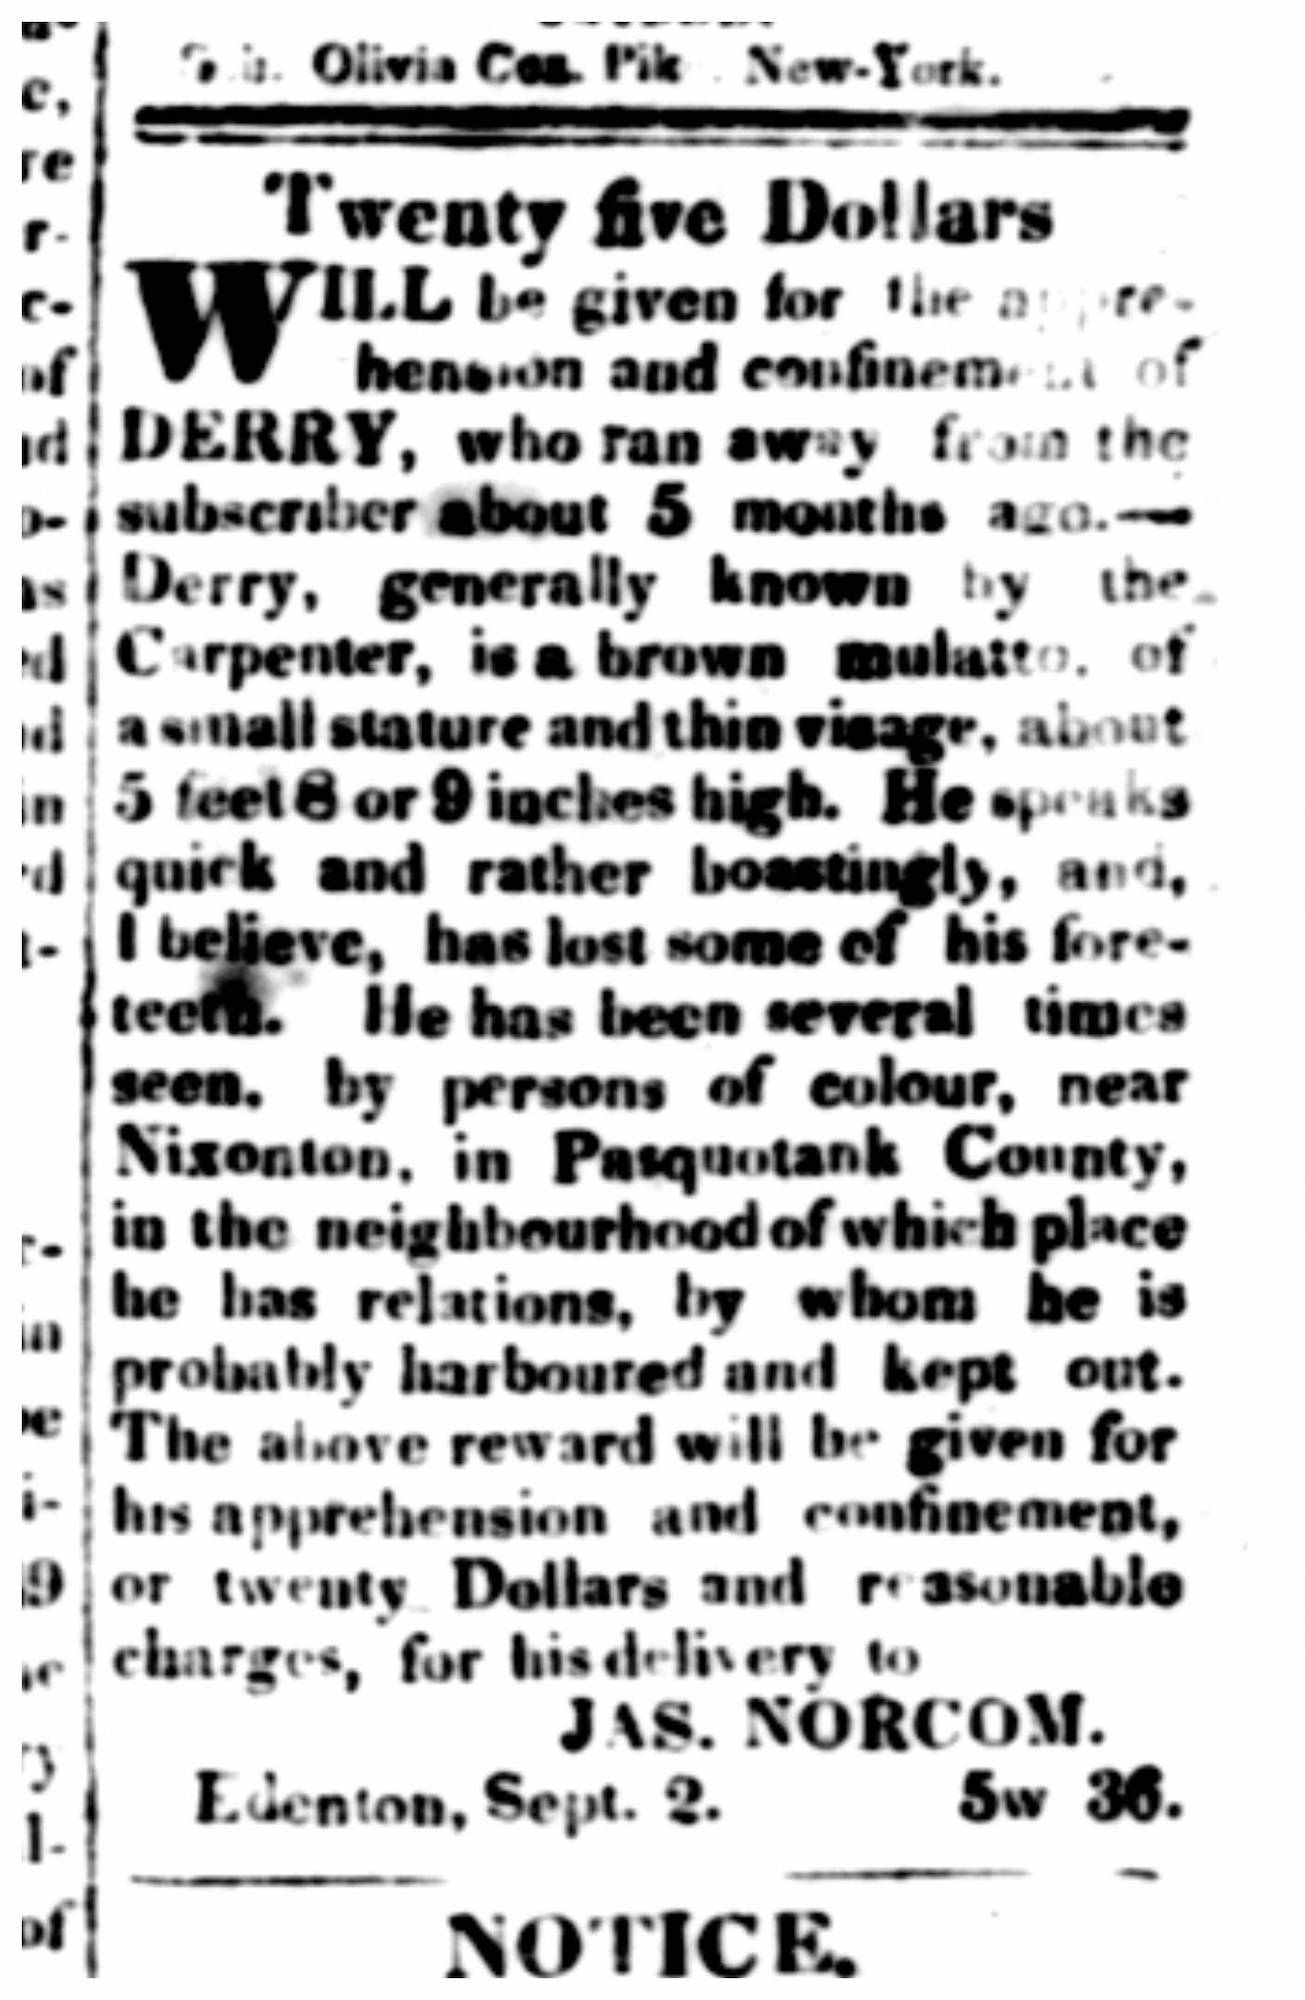 A Runaway Slave Advertisement Placed By Dr James Norcom